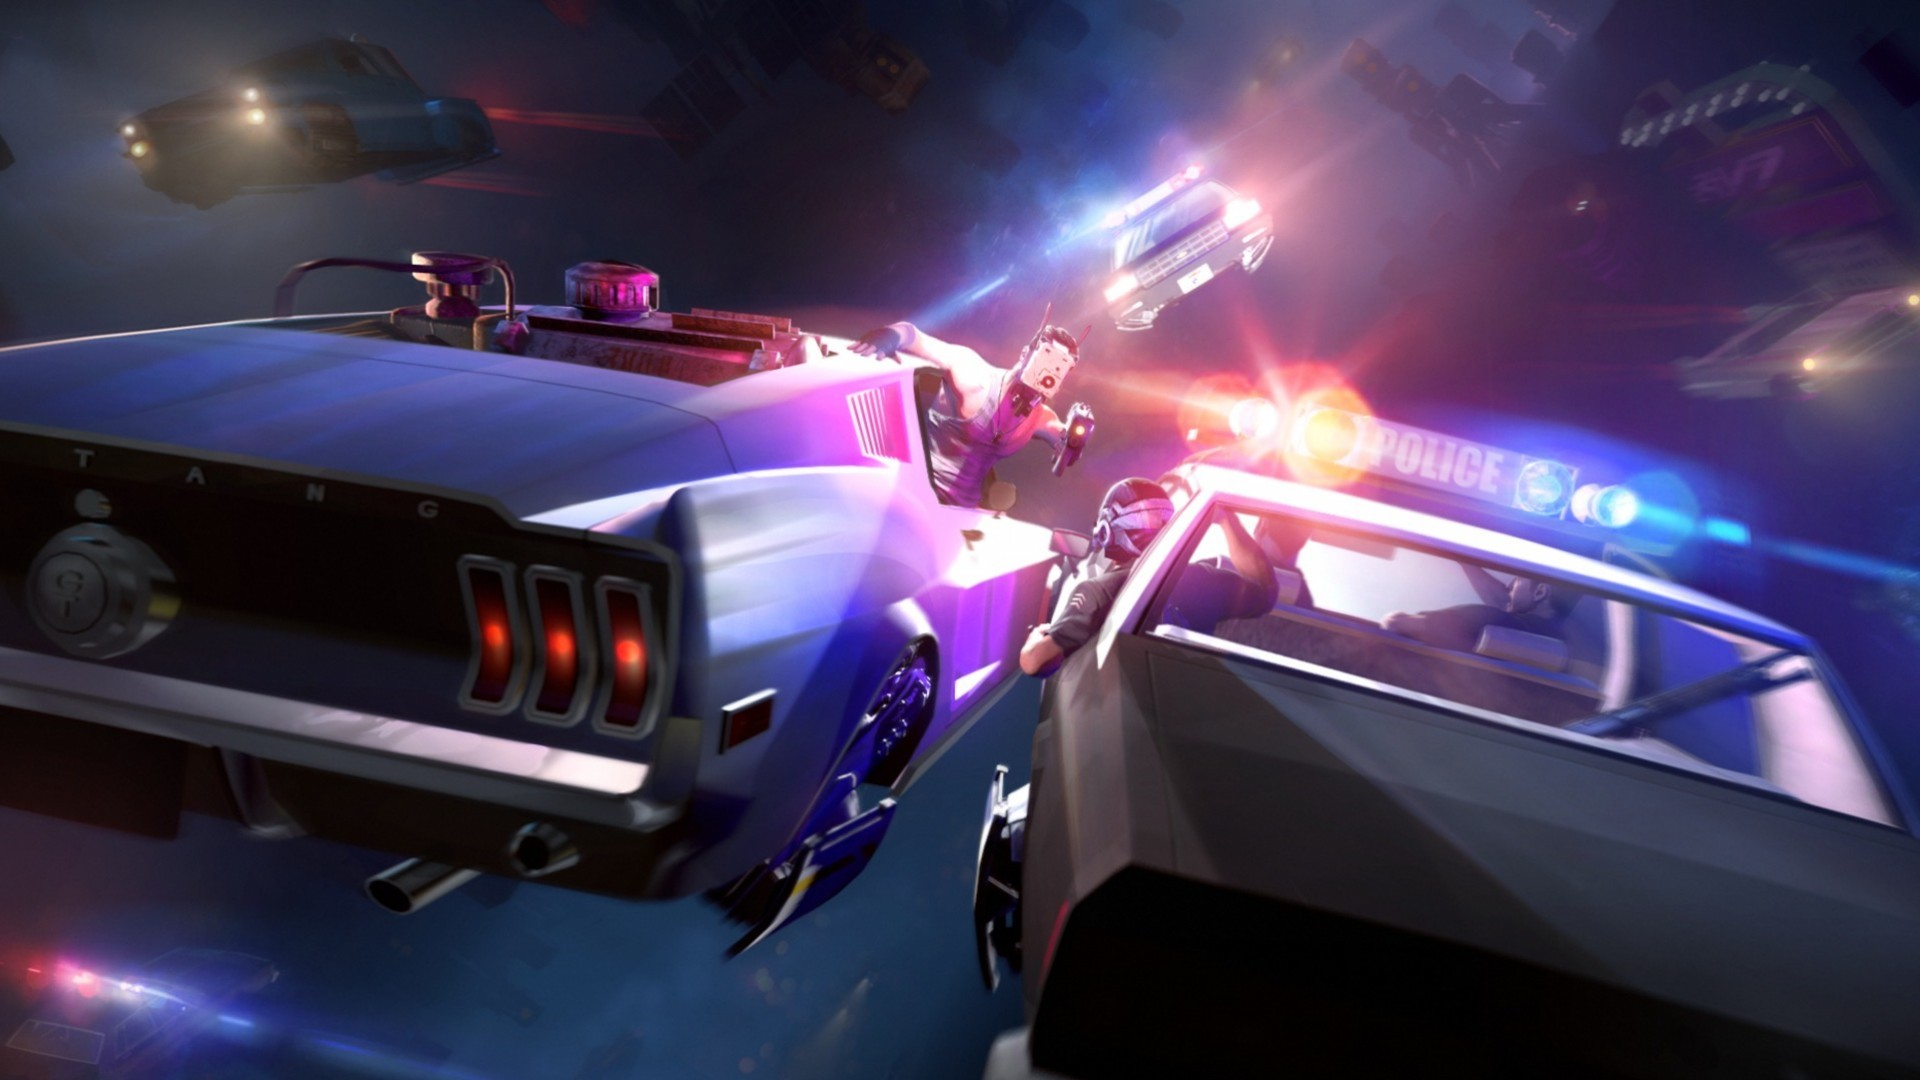 artwork car ford mustang police futuristic gun